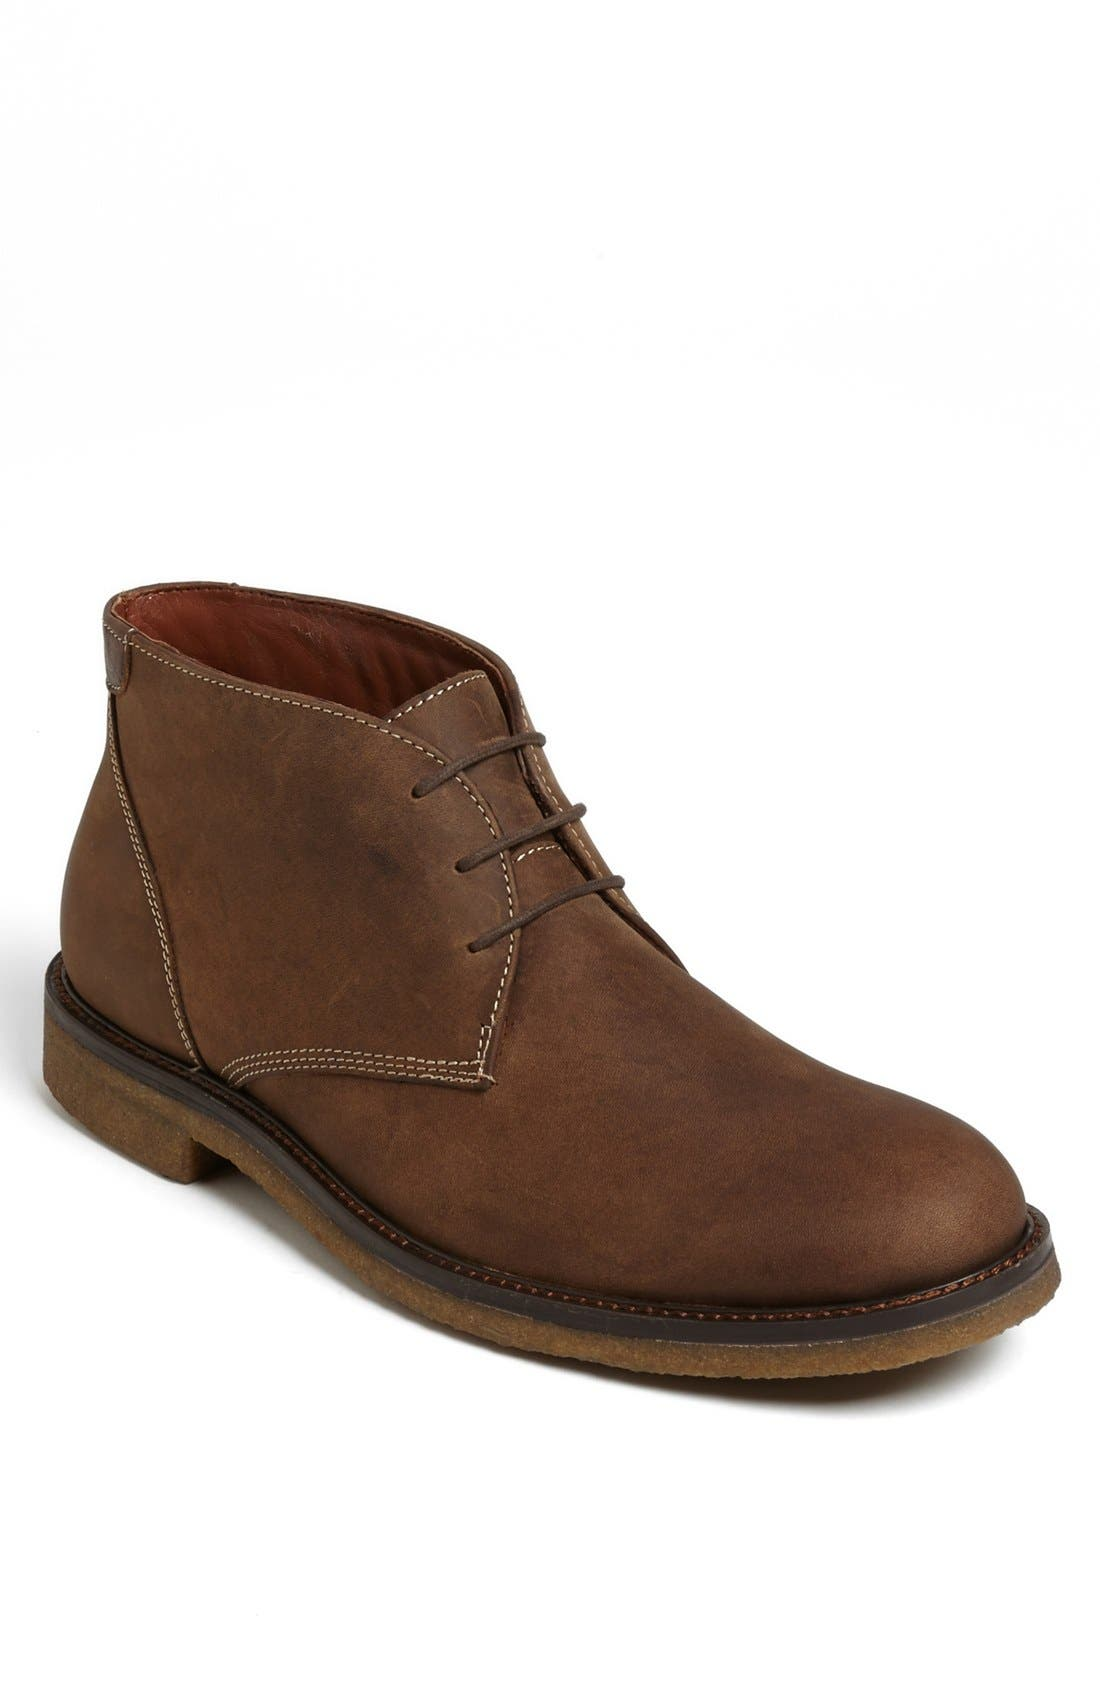 Johnston & Murphy 'Copeland' Suede Chukka Boot (Men)